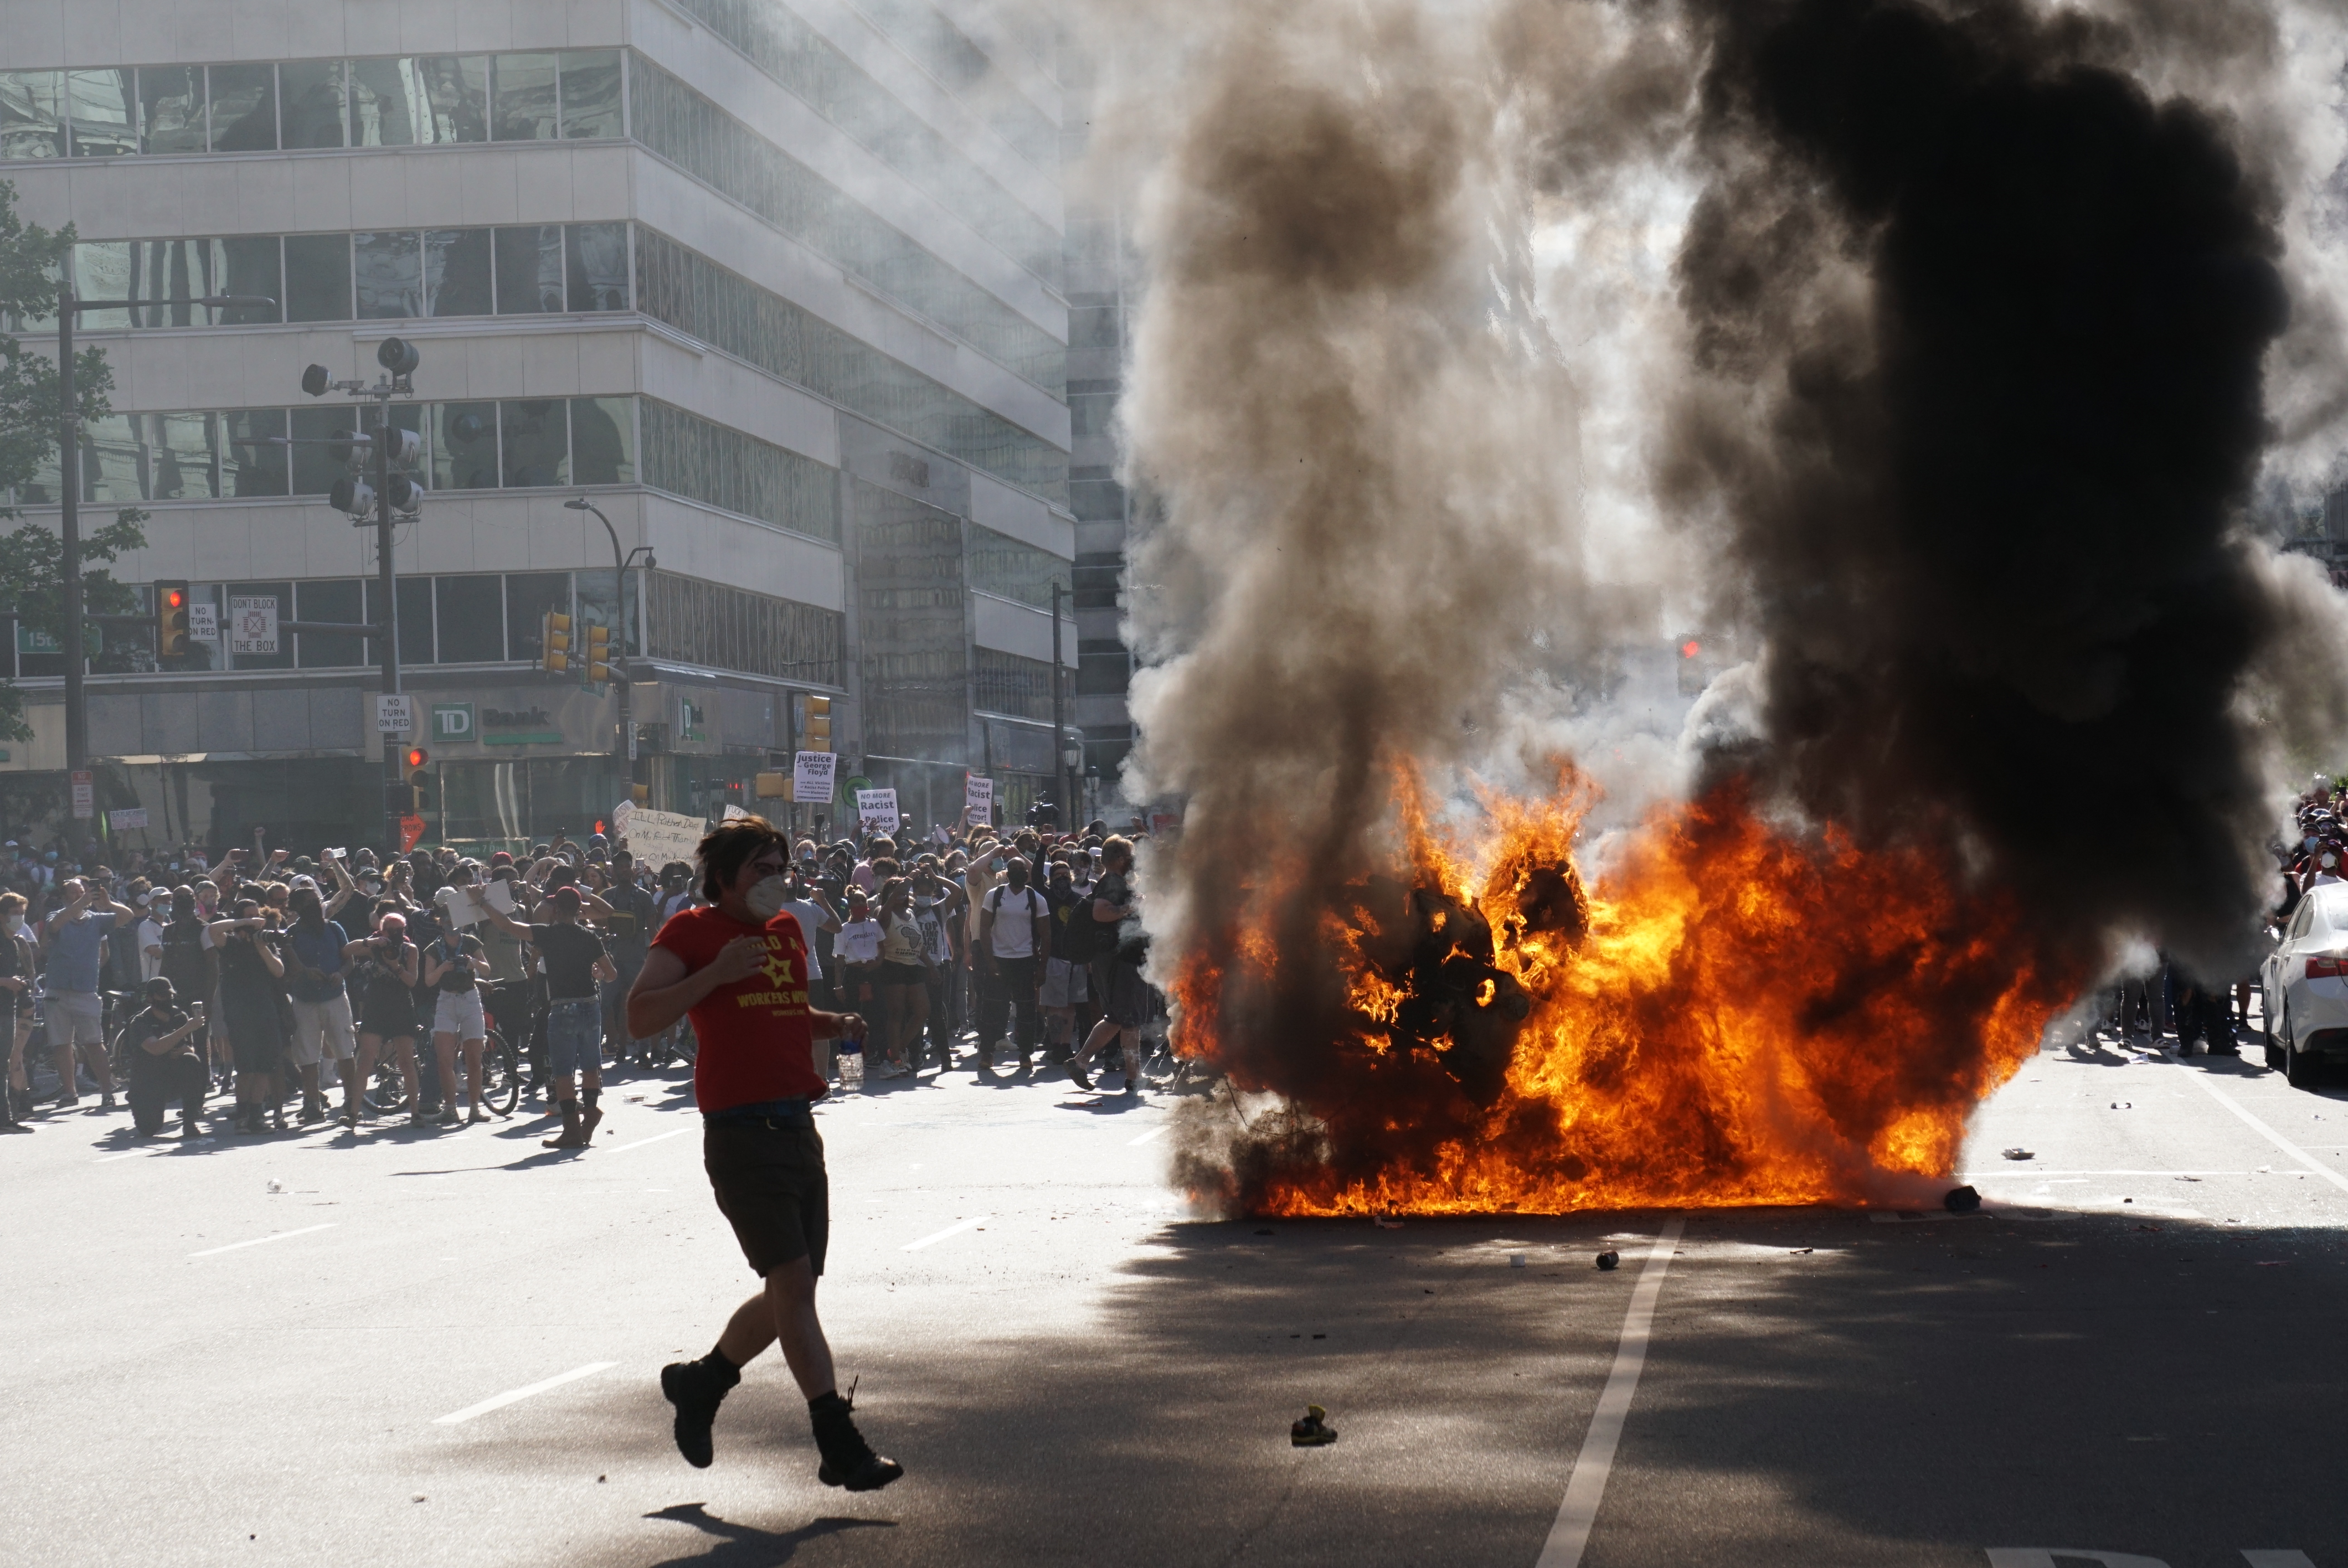 PHOTOS: Looting, Violence Erupt After Peaceful Protest in ...